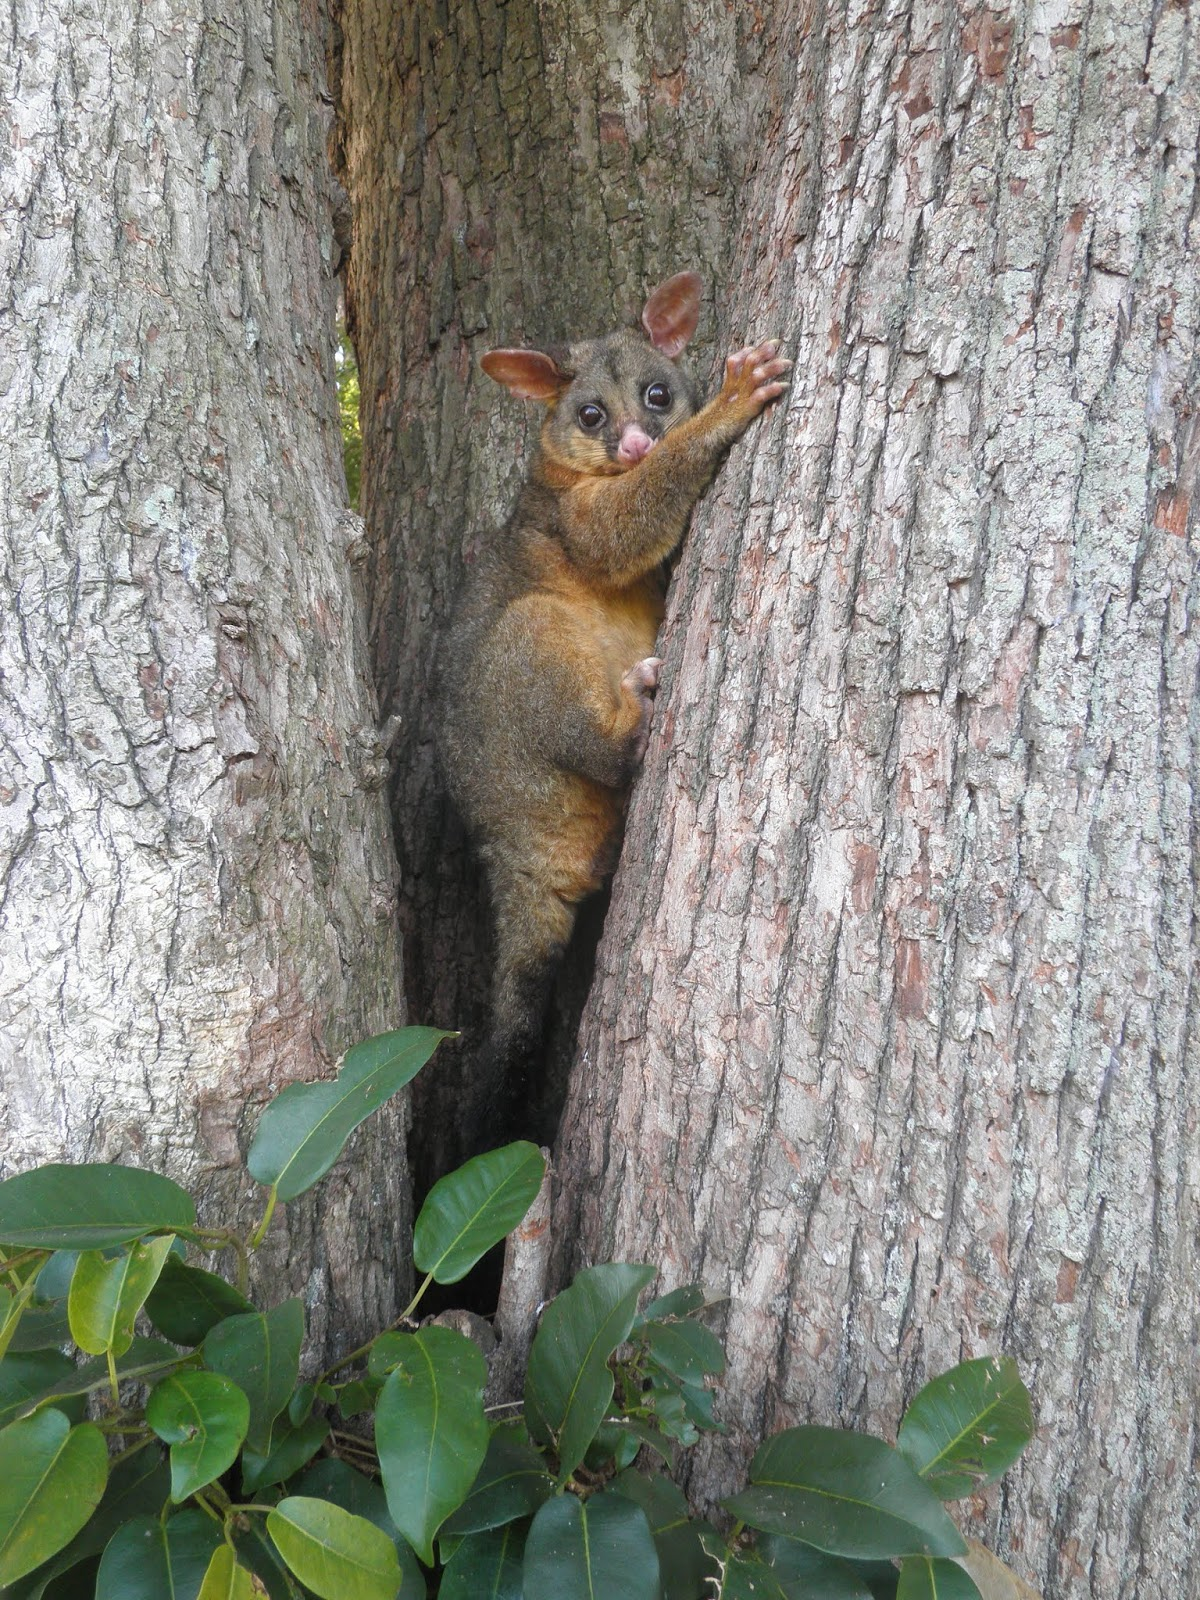 Picture of a possum climbing a tree.